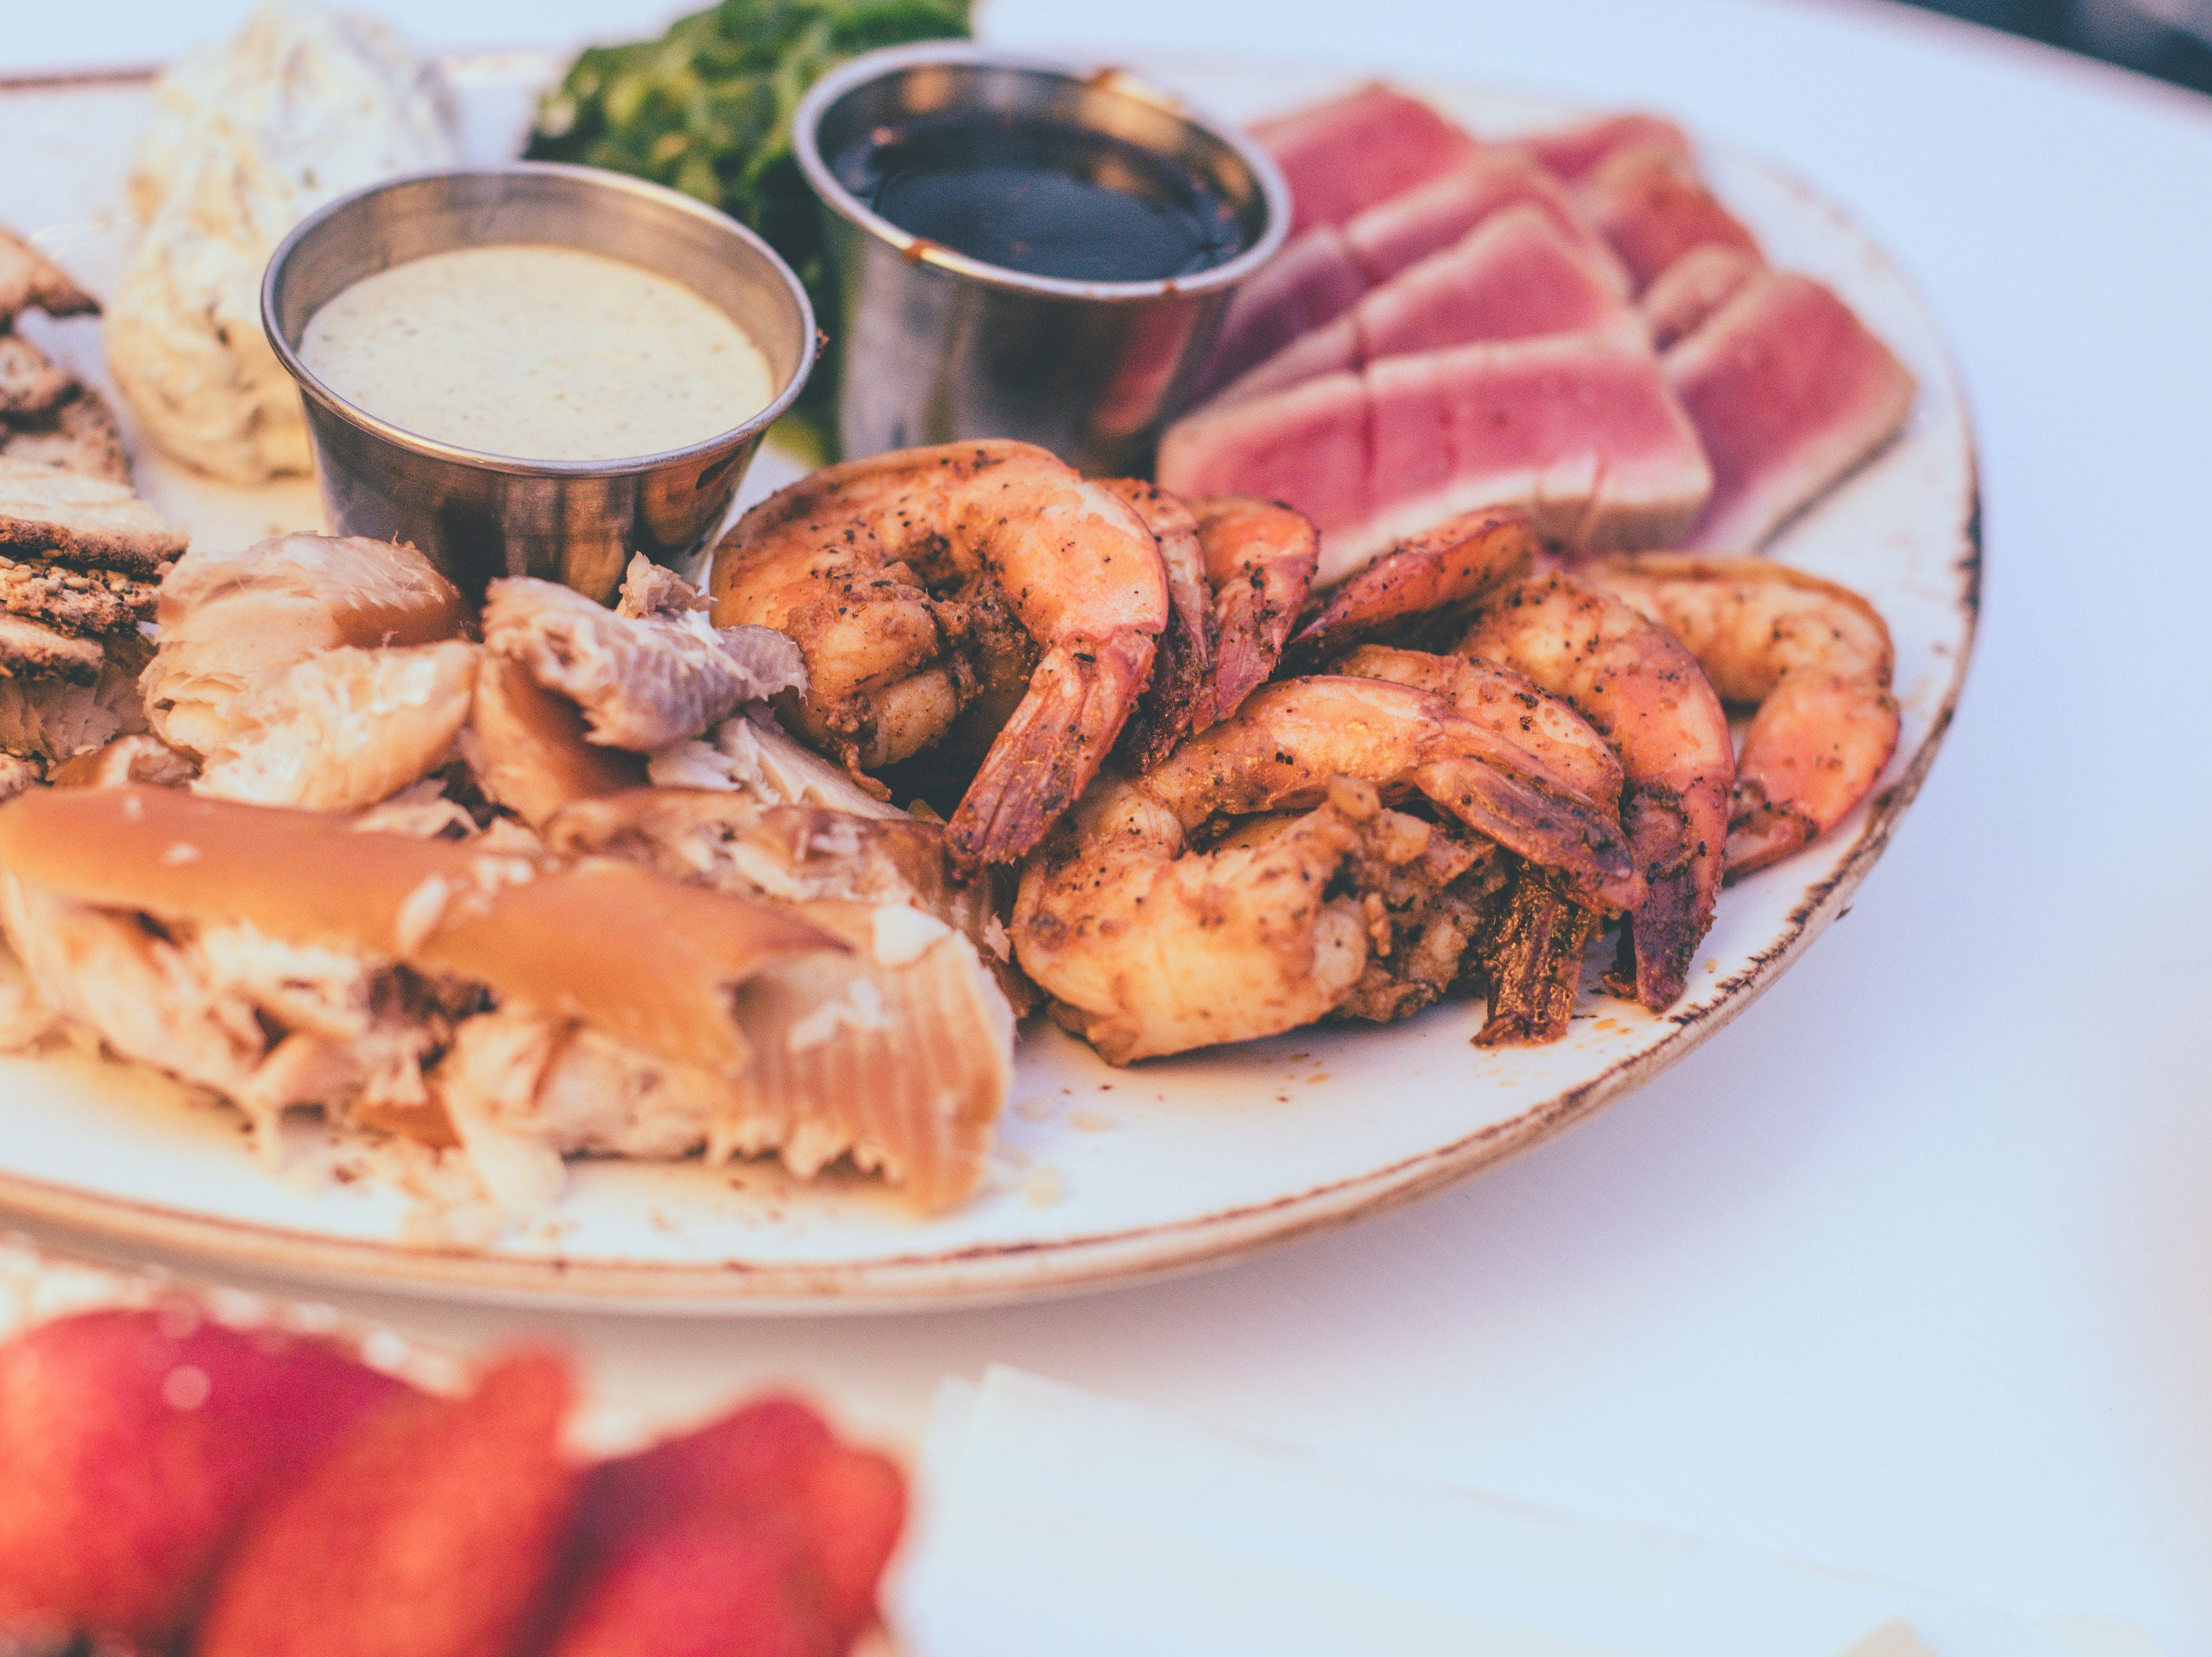 The Seafood Platter, with smoked rainbow trout, spiced shrimp, seared rare ahi tuna and more, is one of six food packages available in Cafe Benelux's Lux Domes.